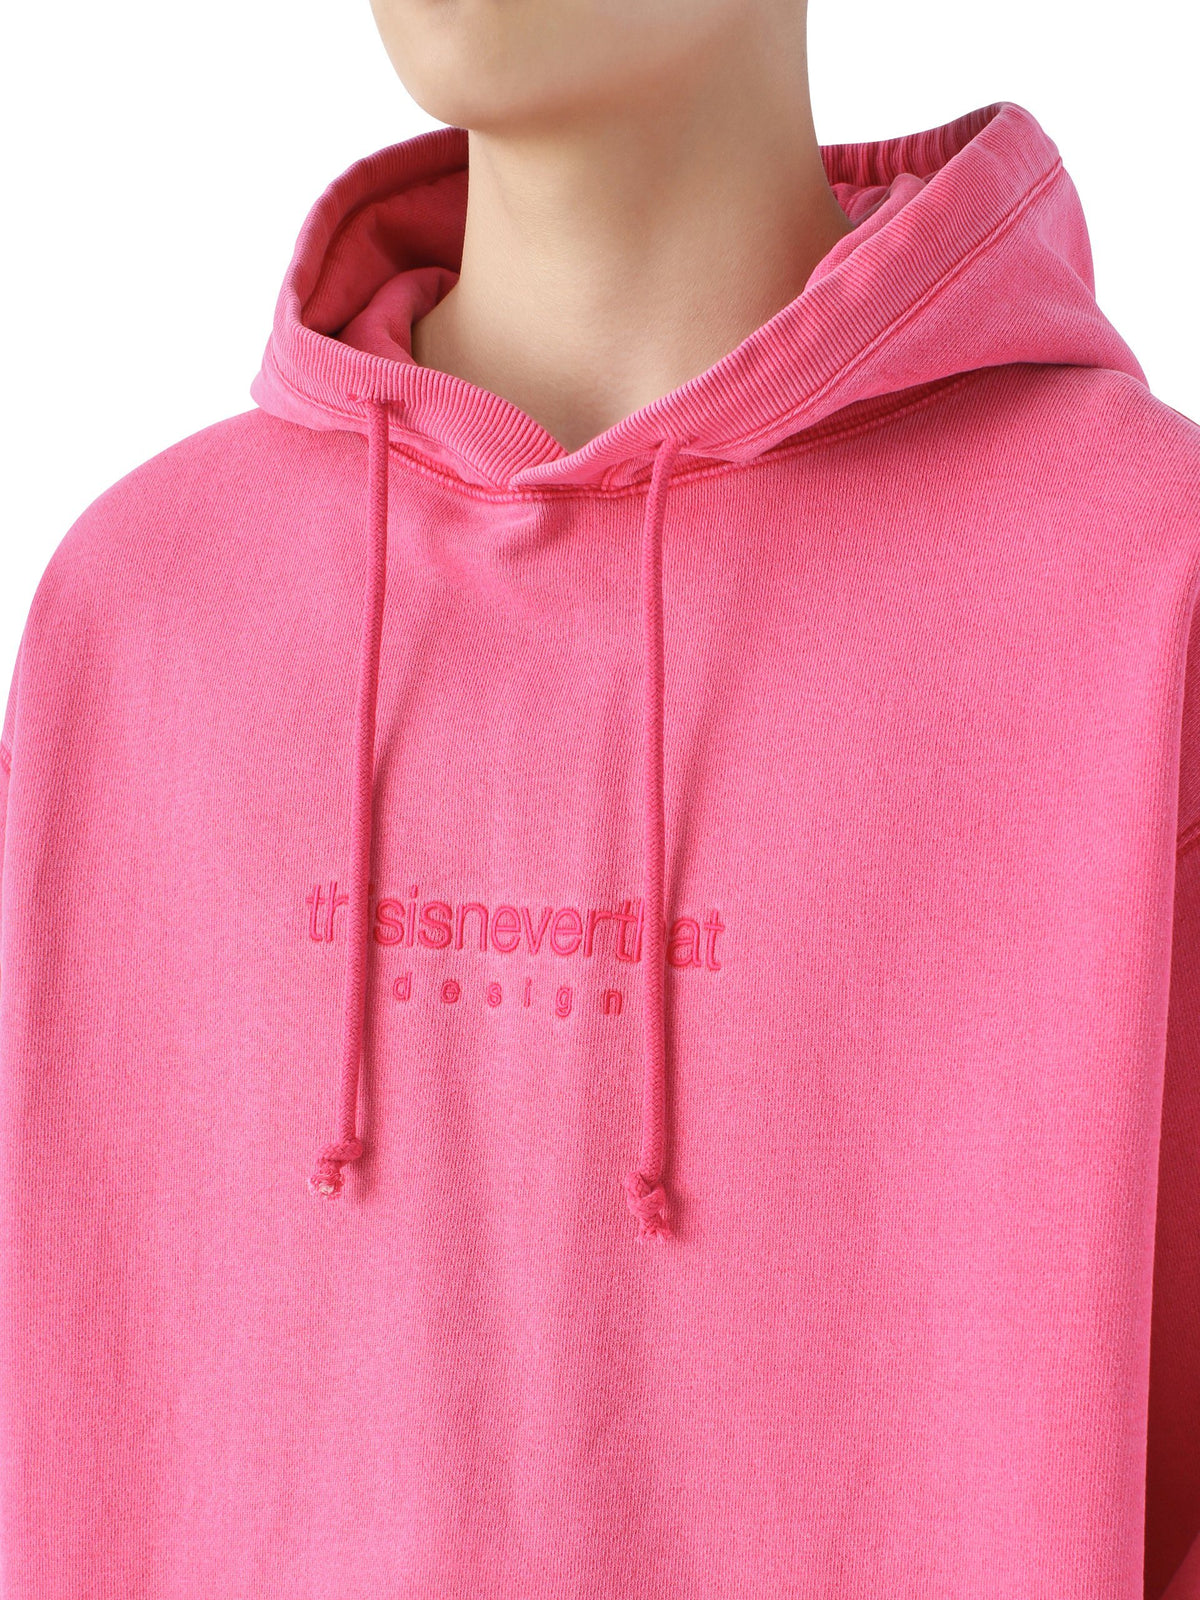 L-Logo Hooded Sweatshirt - thisisneverthat